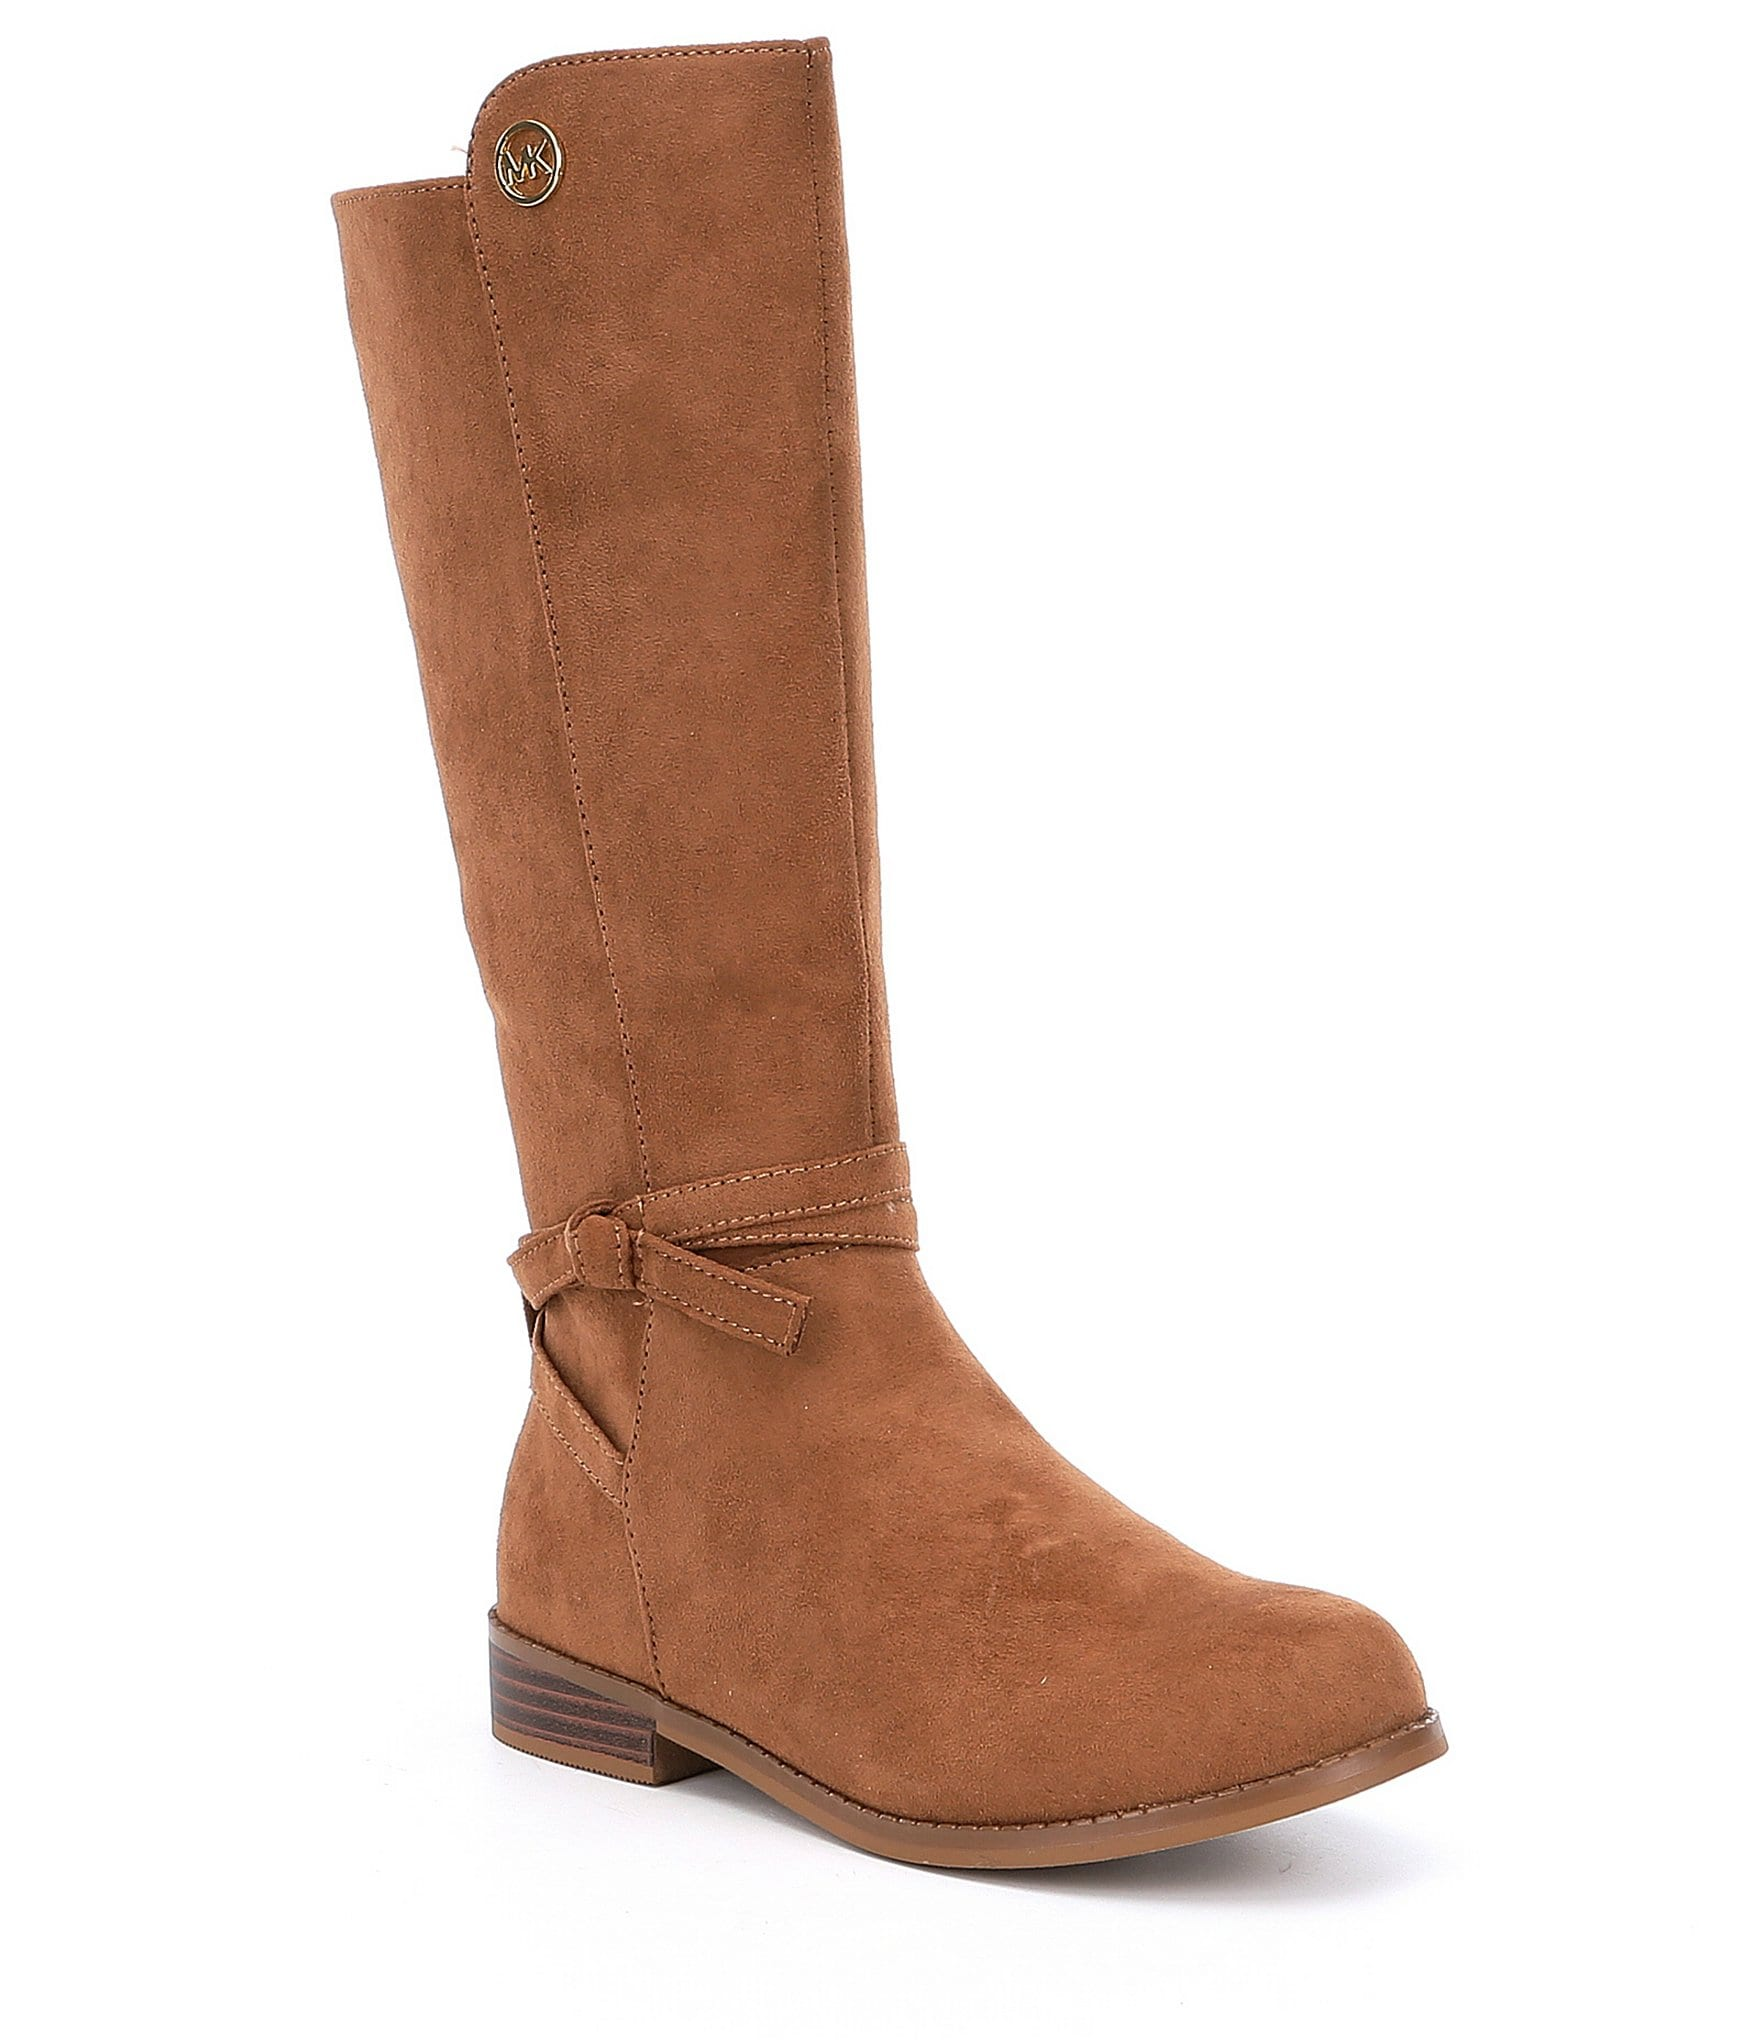 513f28e6e48f5 Buy michael kors ugg style boots   OFF77% Discounted